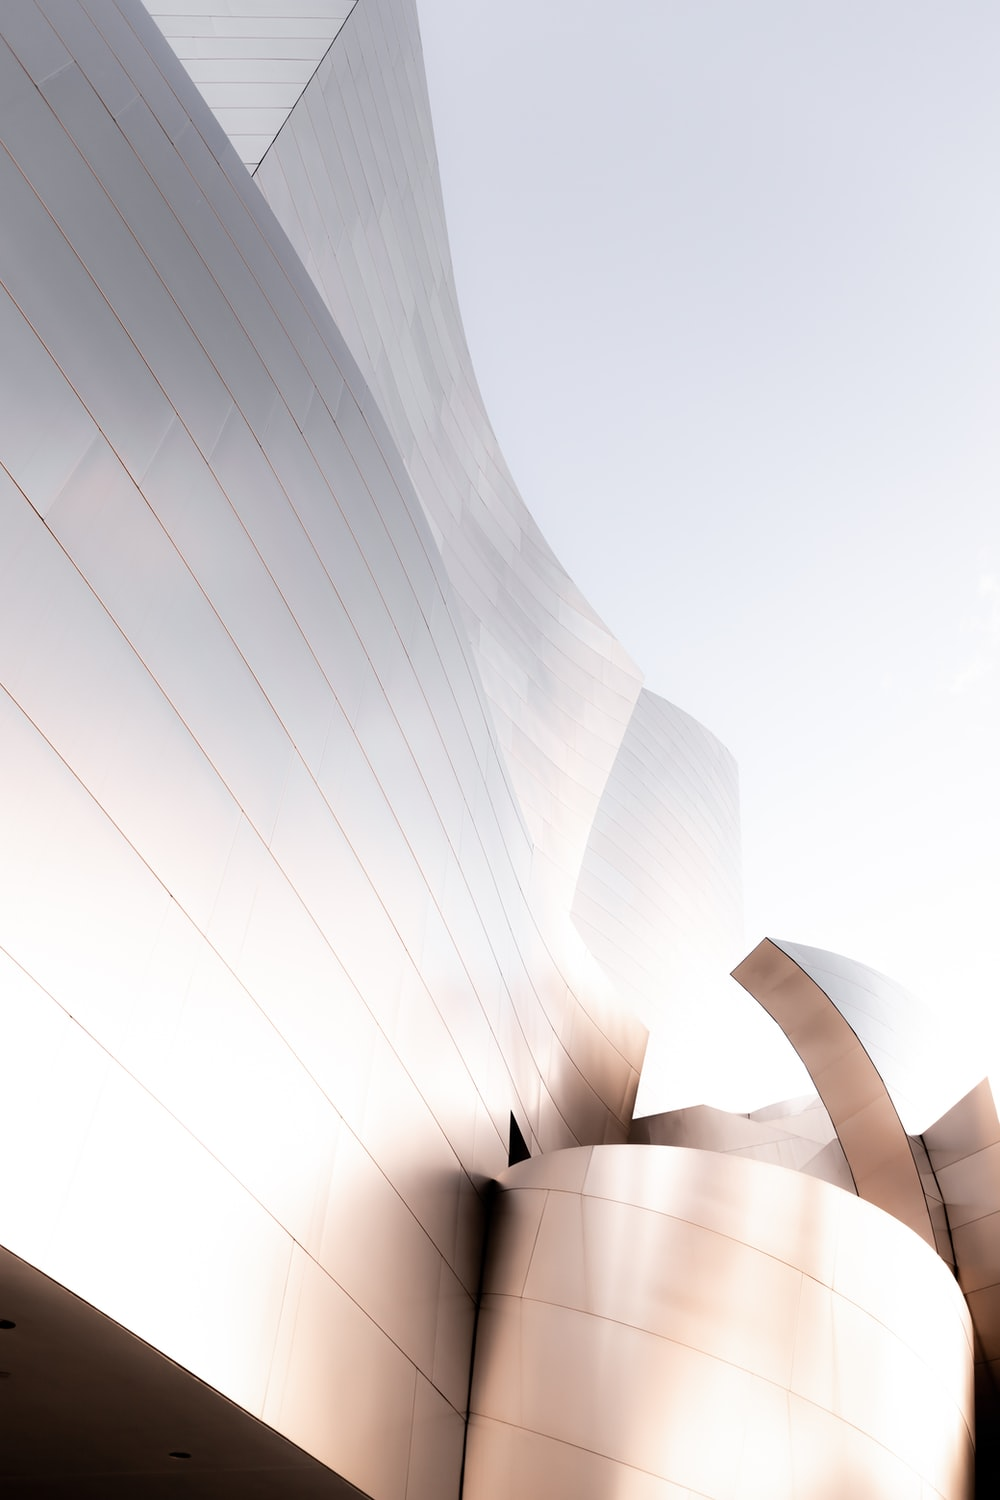 white spiral building in grayscale photography